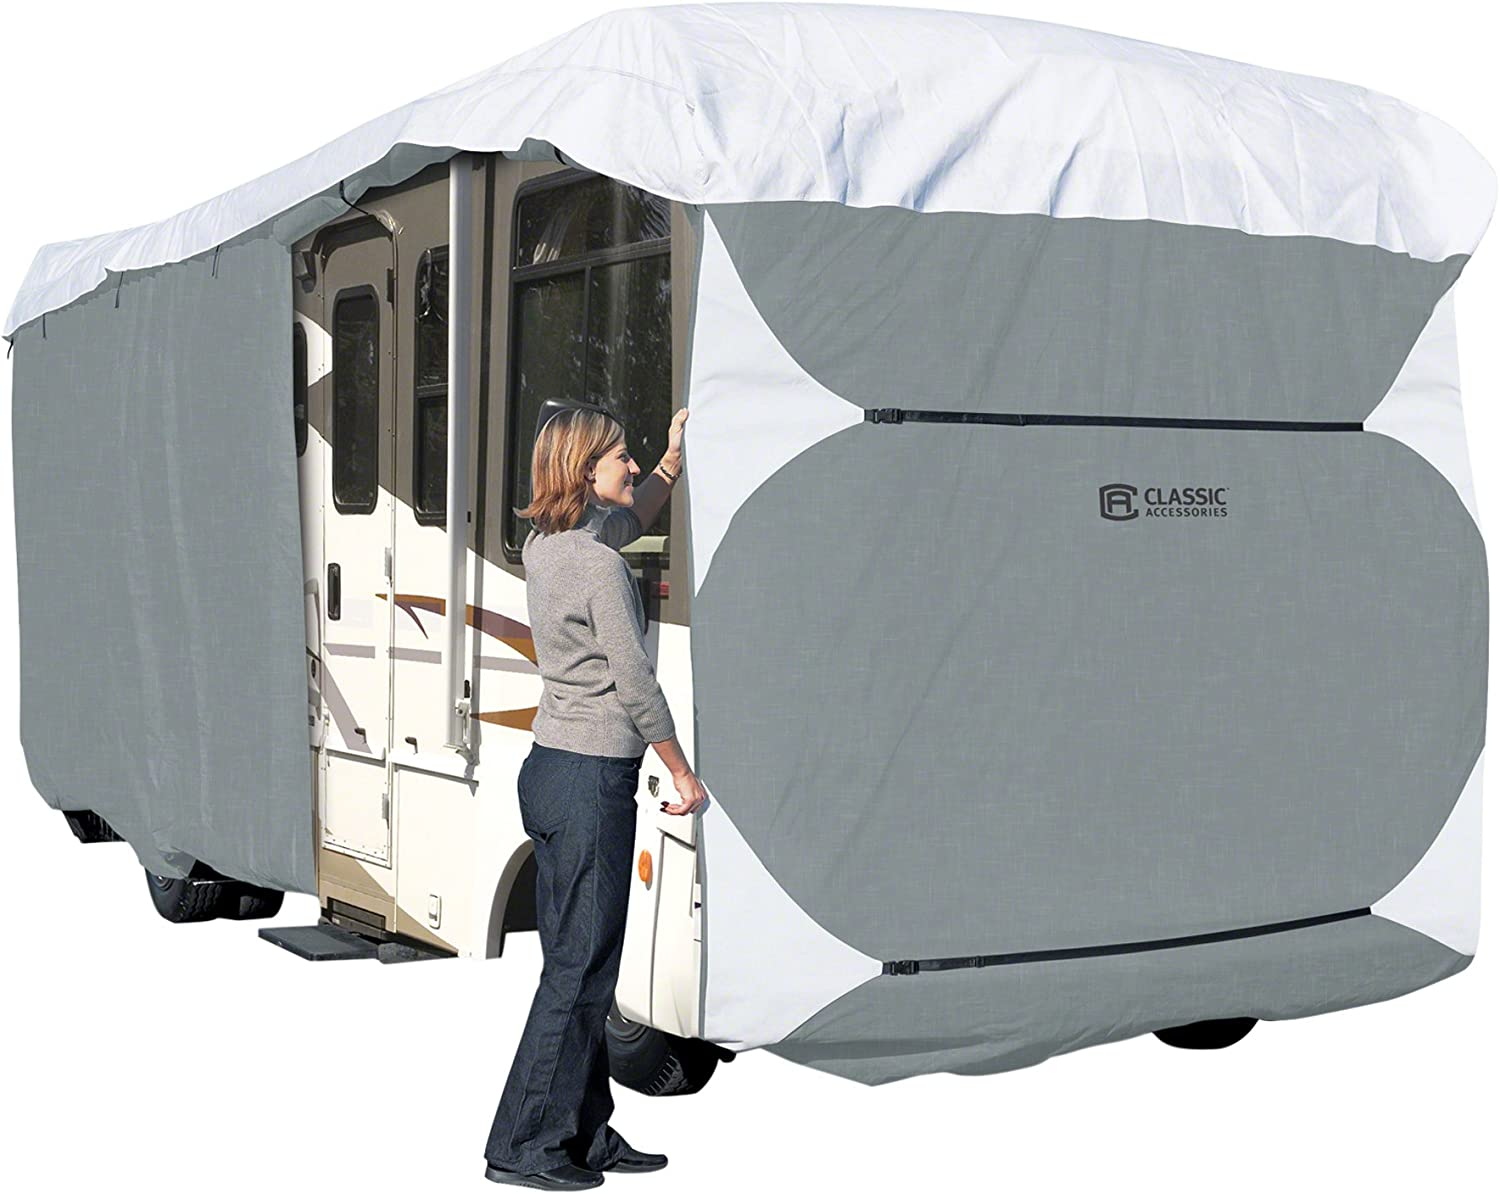 Classic Accessories OverDrive PolyPro 3 Deluxe Class A Extra Tall RV Cover, Fits 37' - 40' RVs